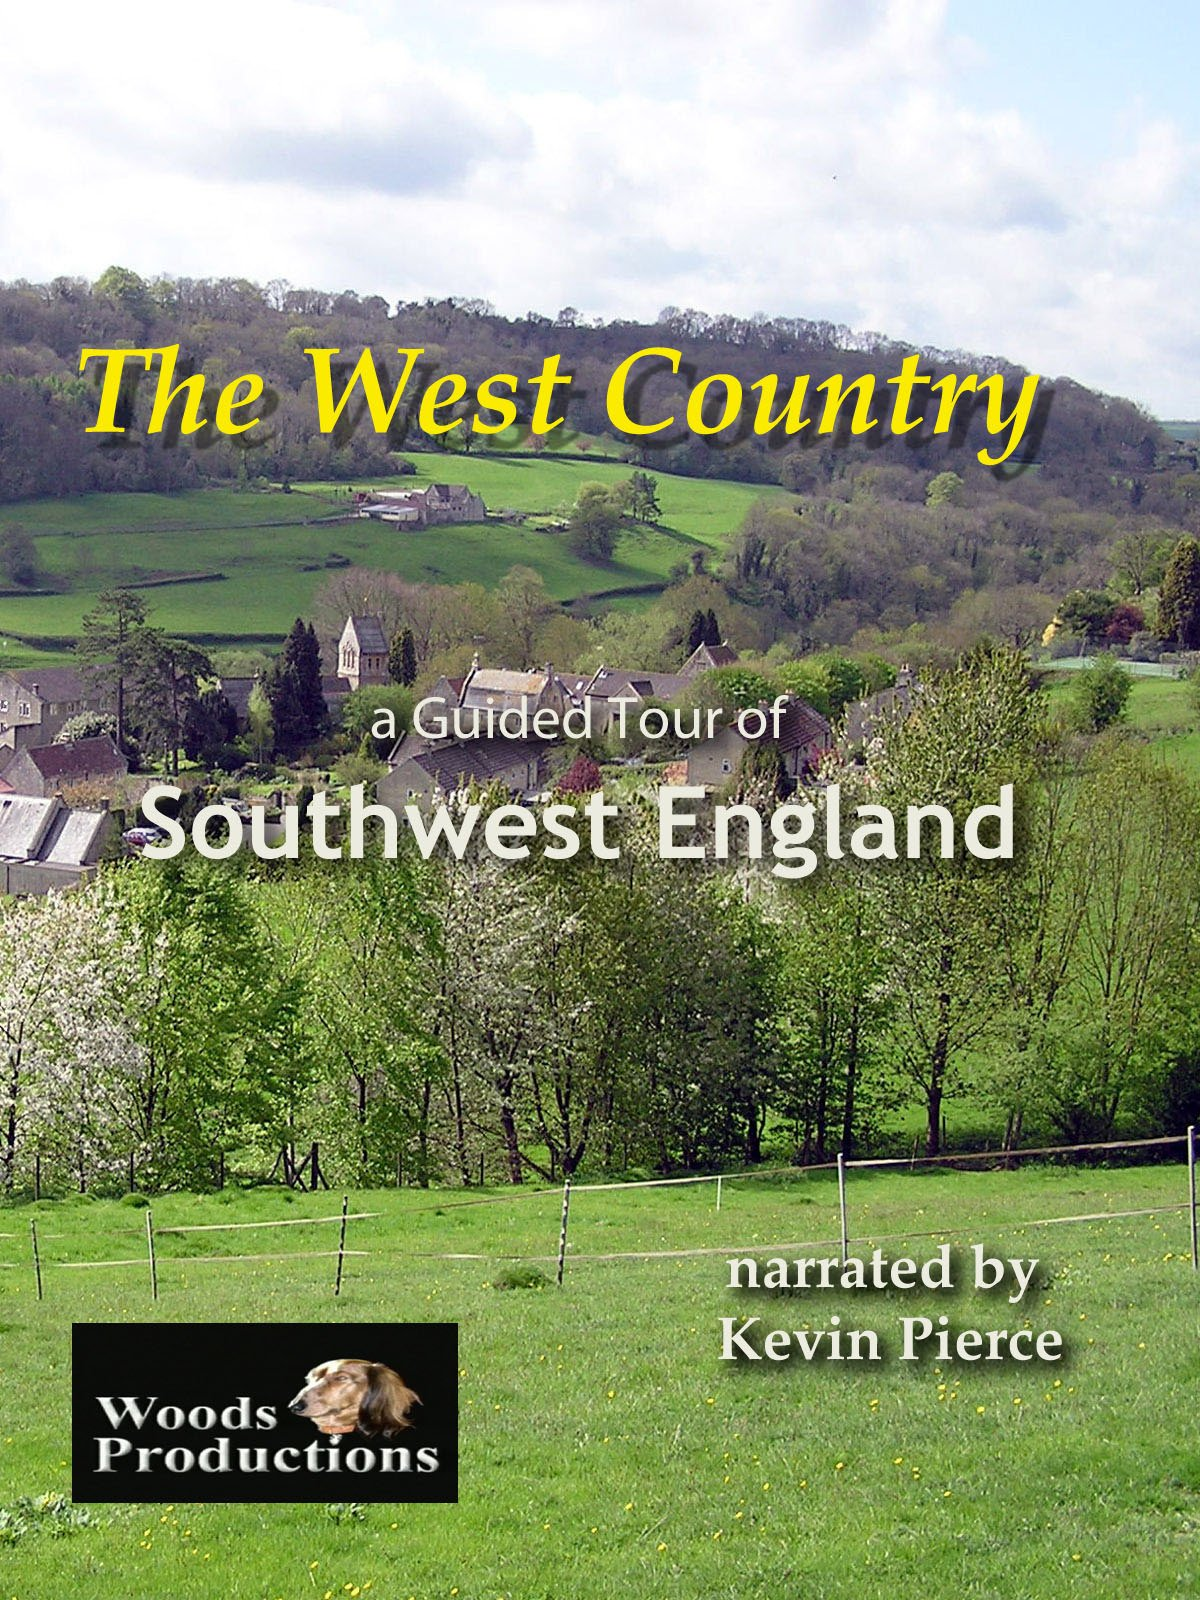 The West Country: A Guided Tour of Southwest England on Amazon Prime Instant Video UK